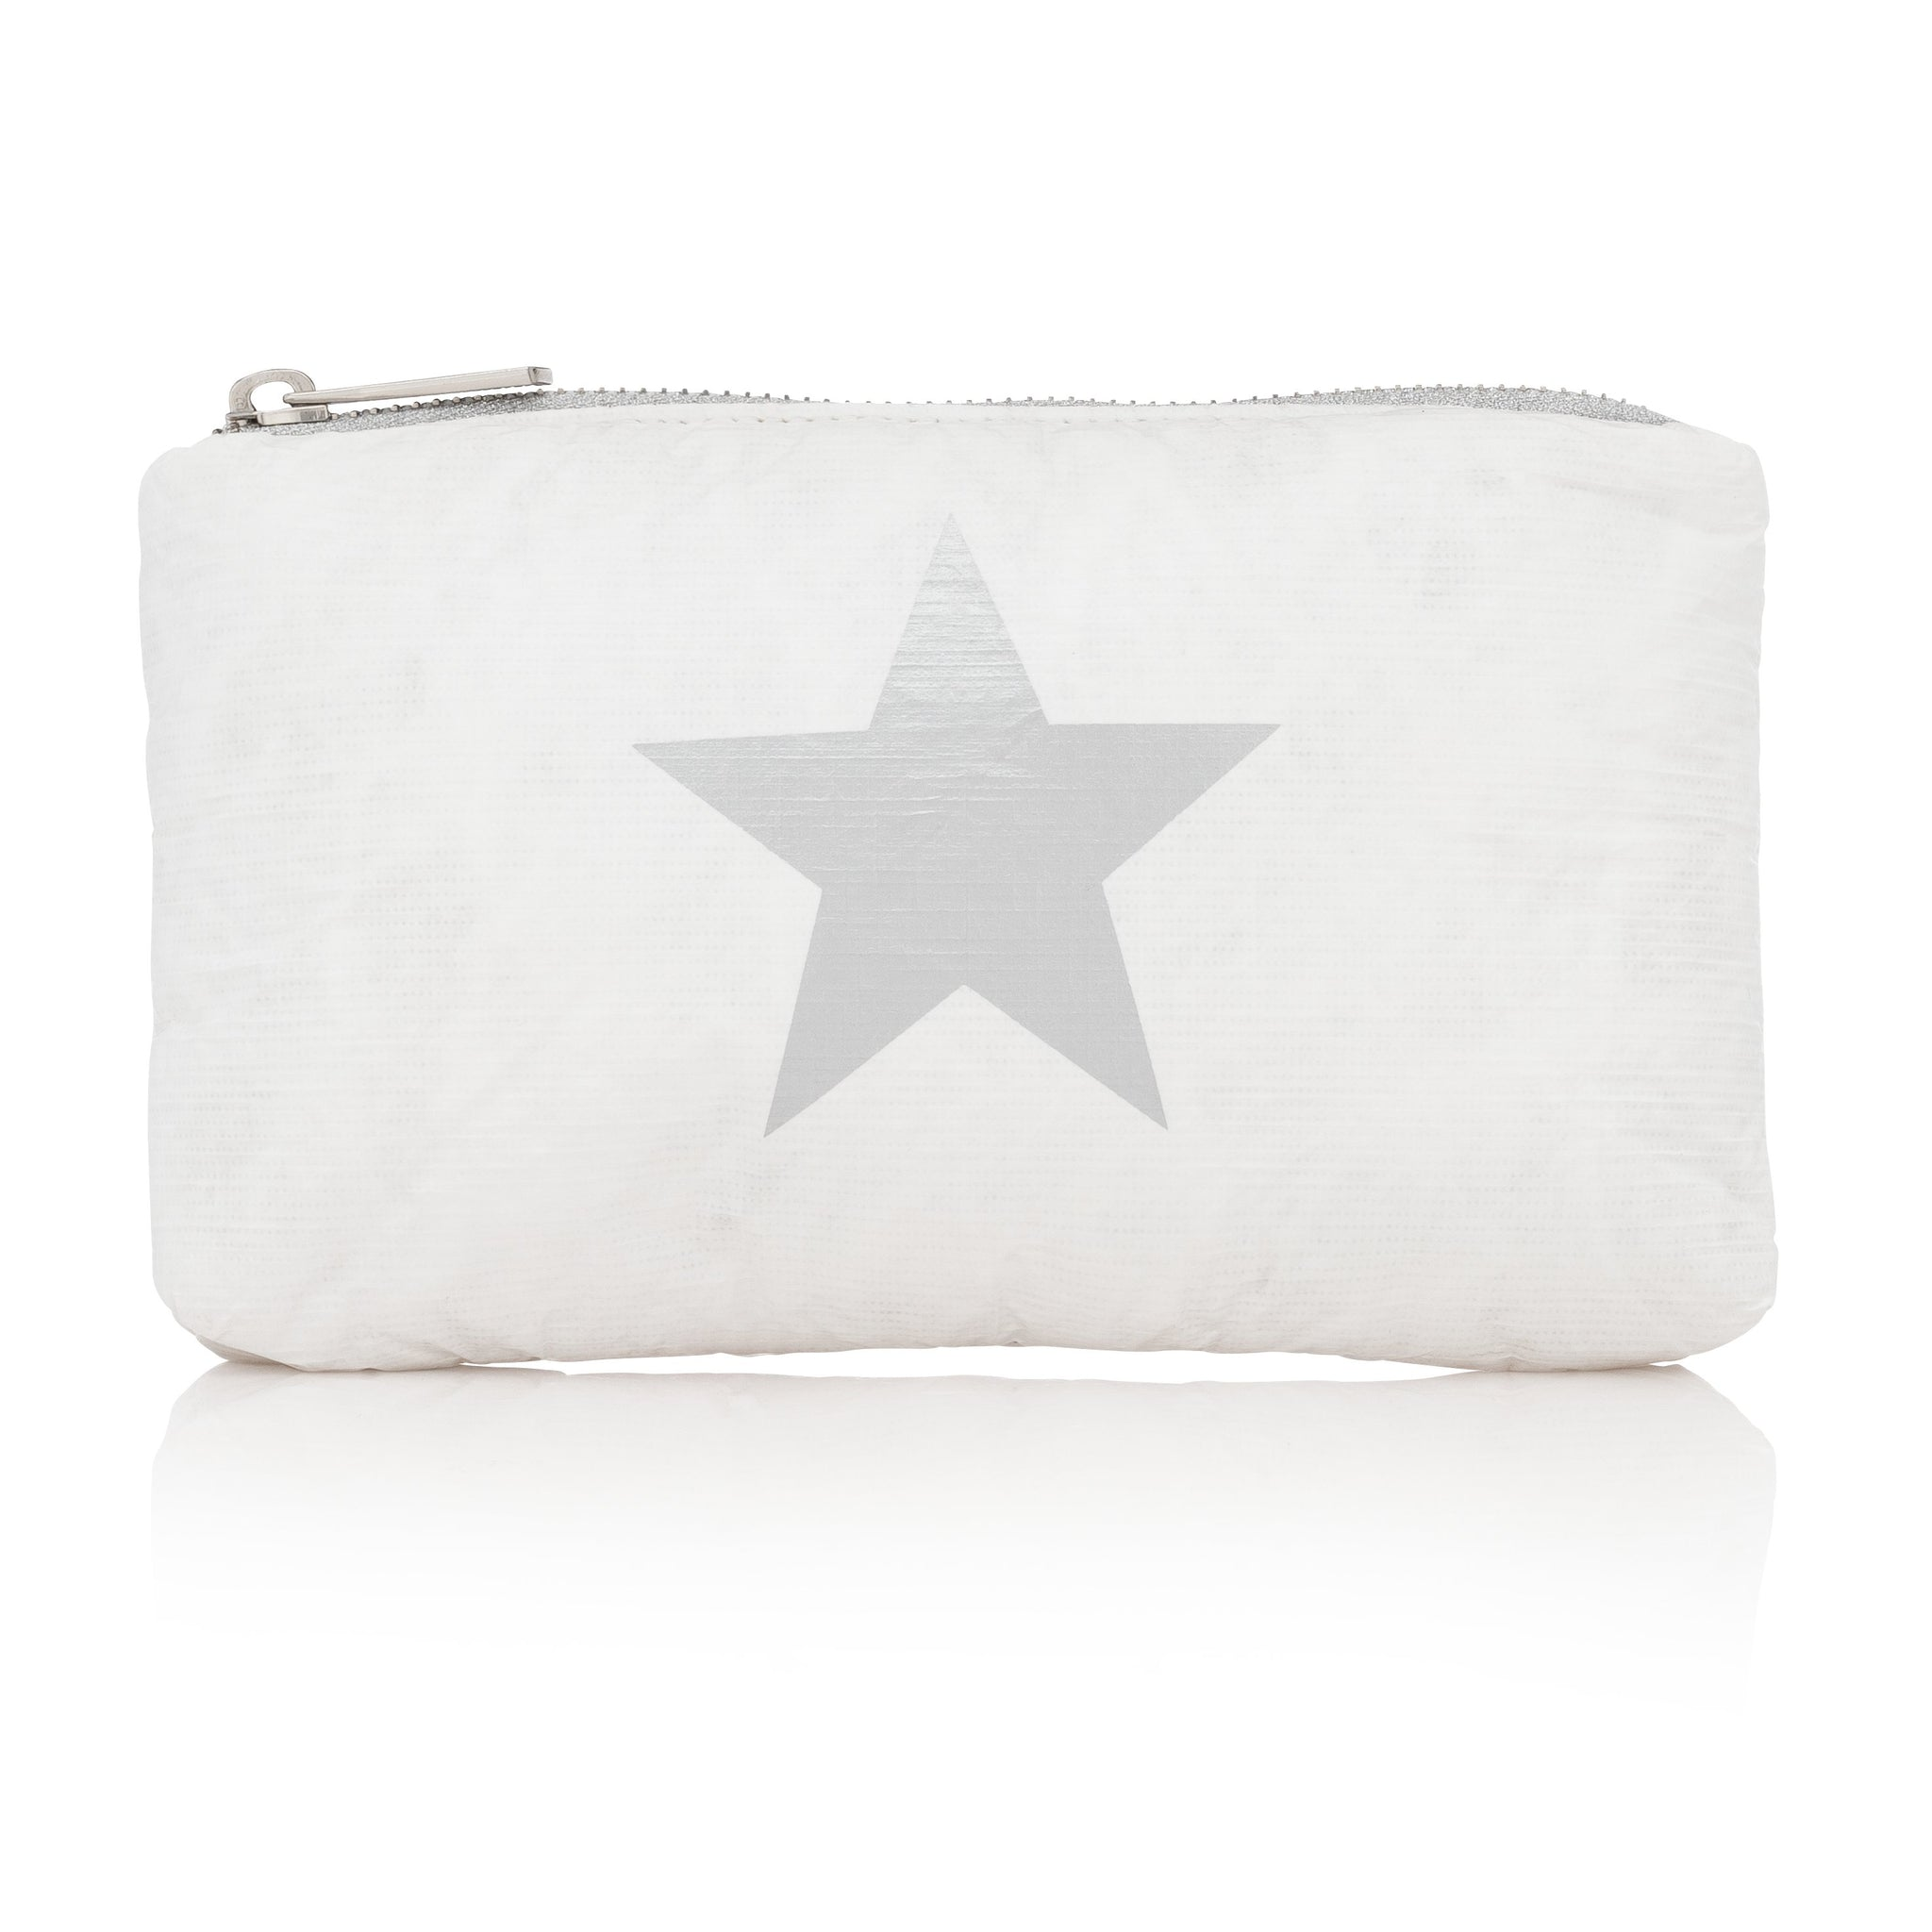 Mini Padded Pack - White with Metallic Silver Star